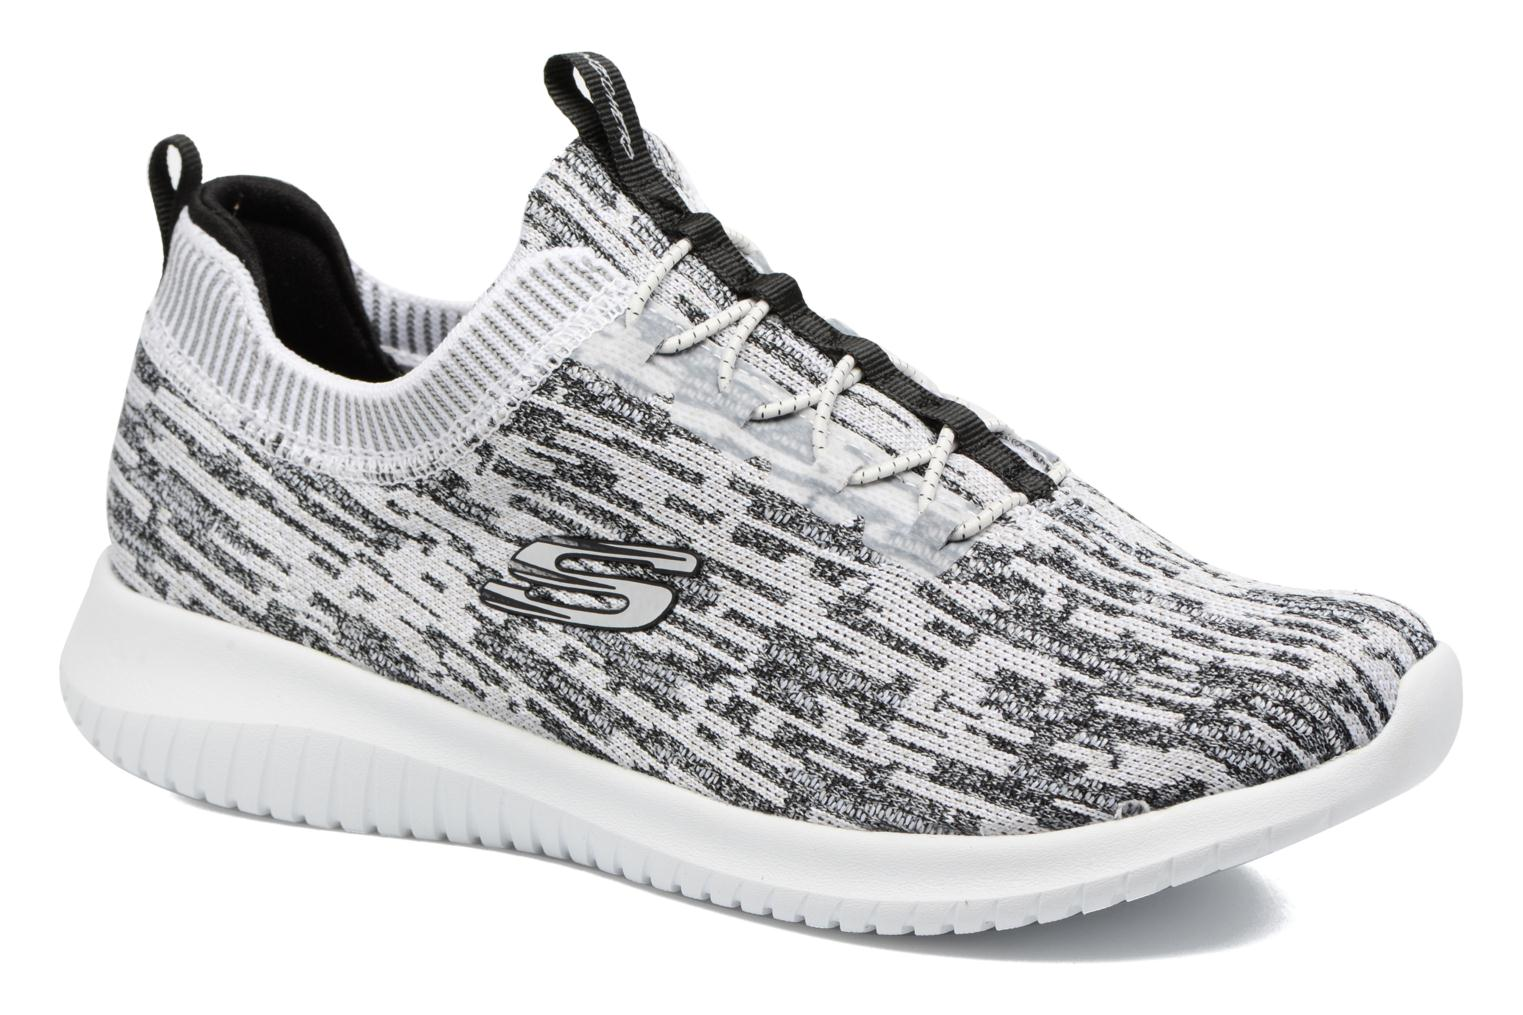 Zapatillas de deporte Skechers Ultra Flex Bright Horizon Gris vista de detalle / par